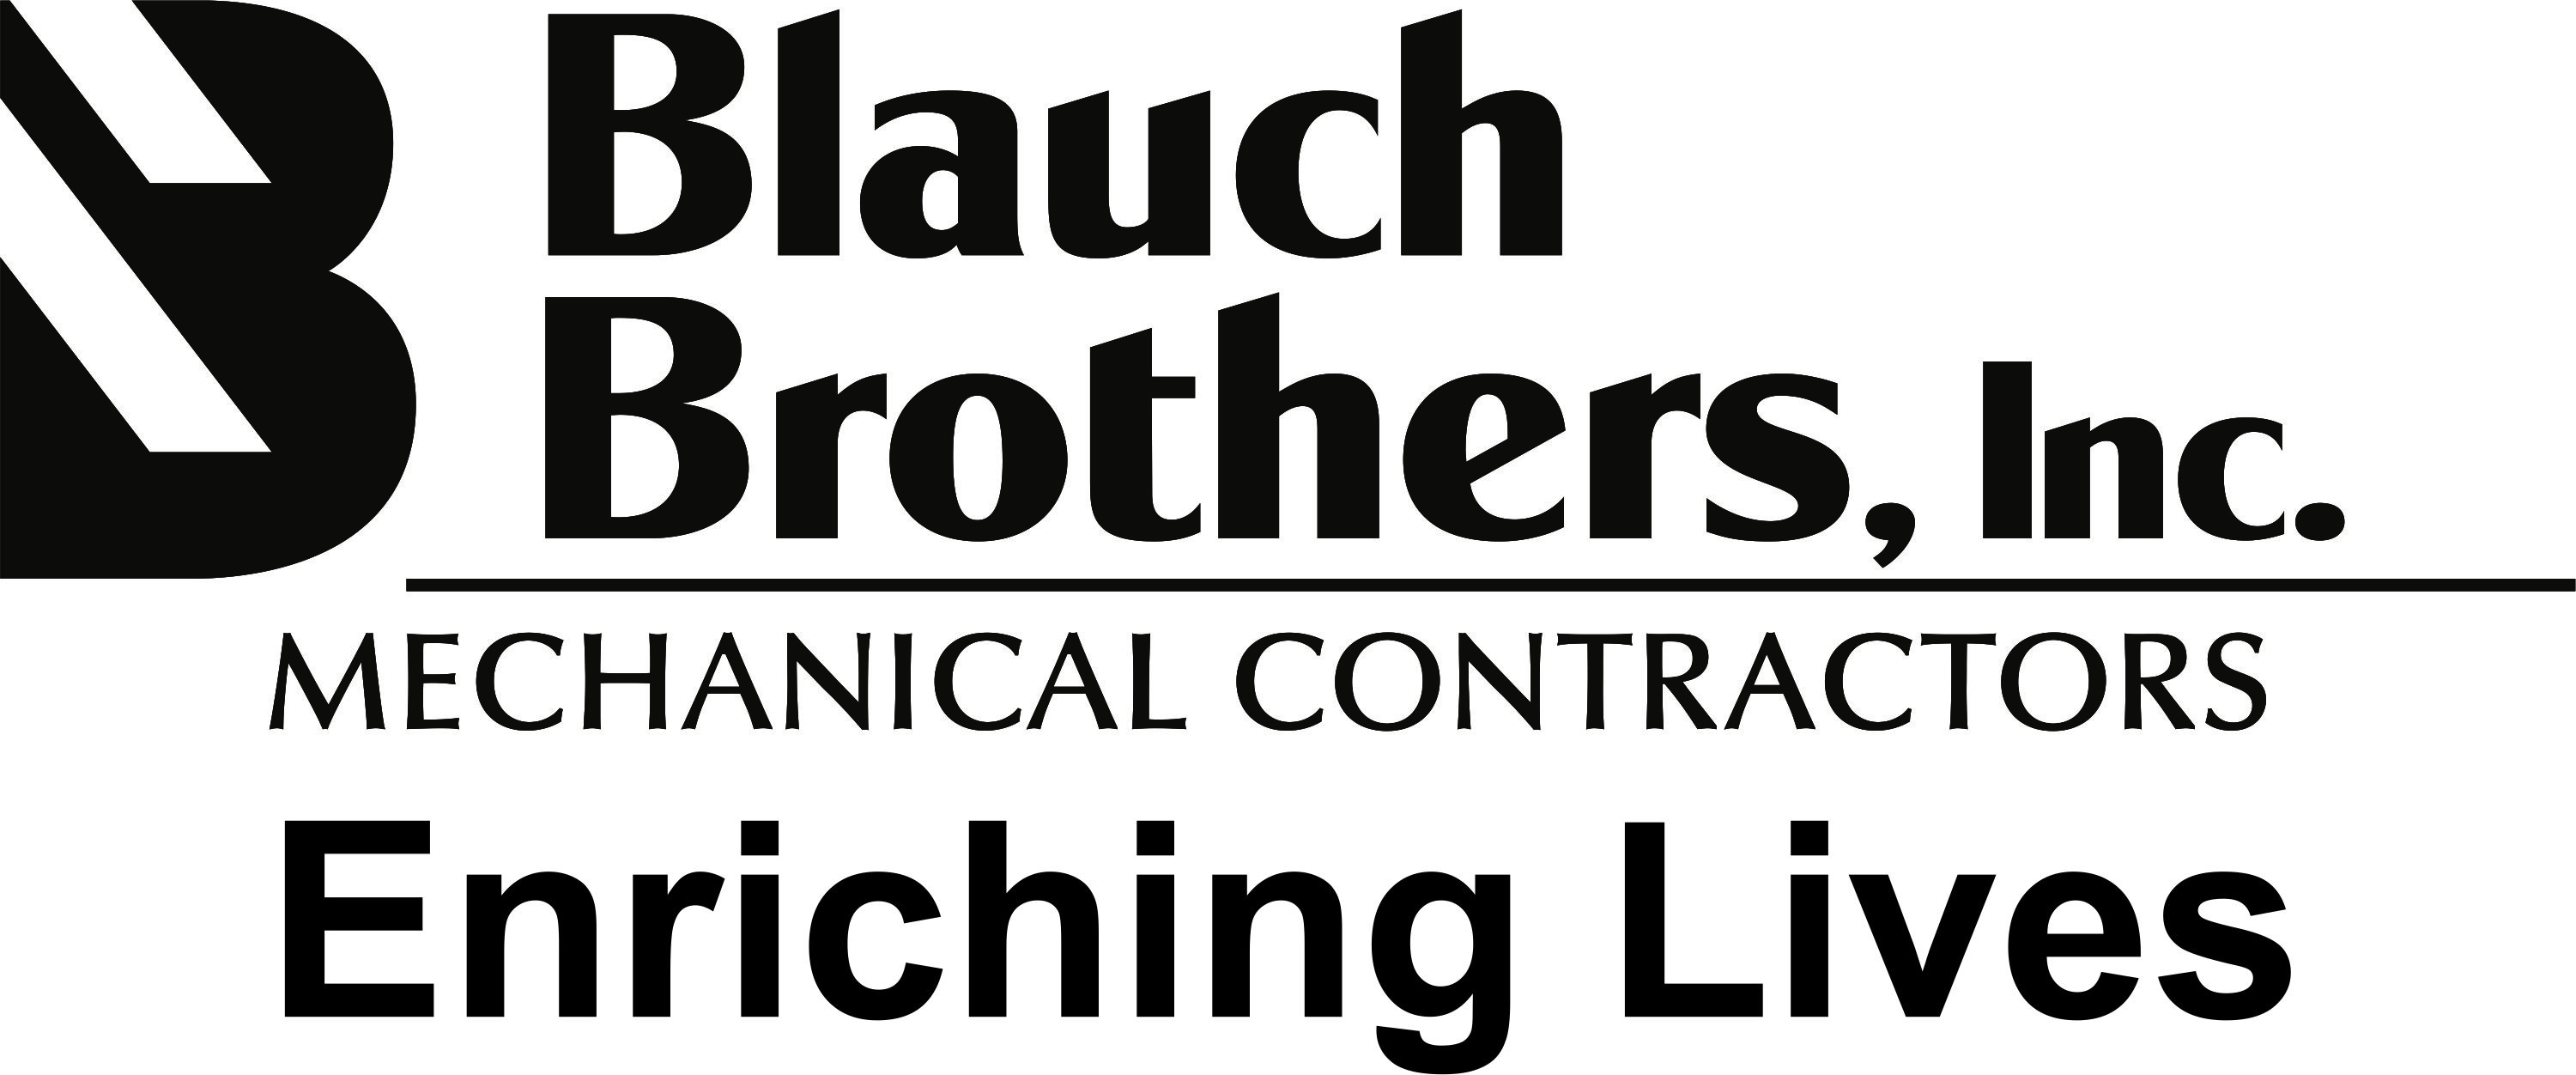 Blauch Brothers, Inc